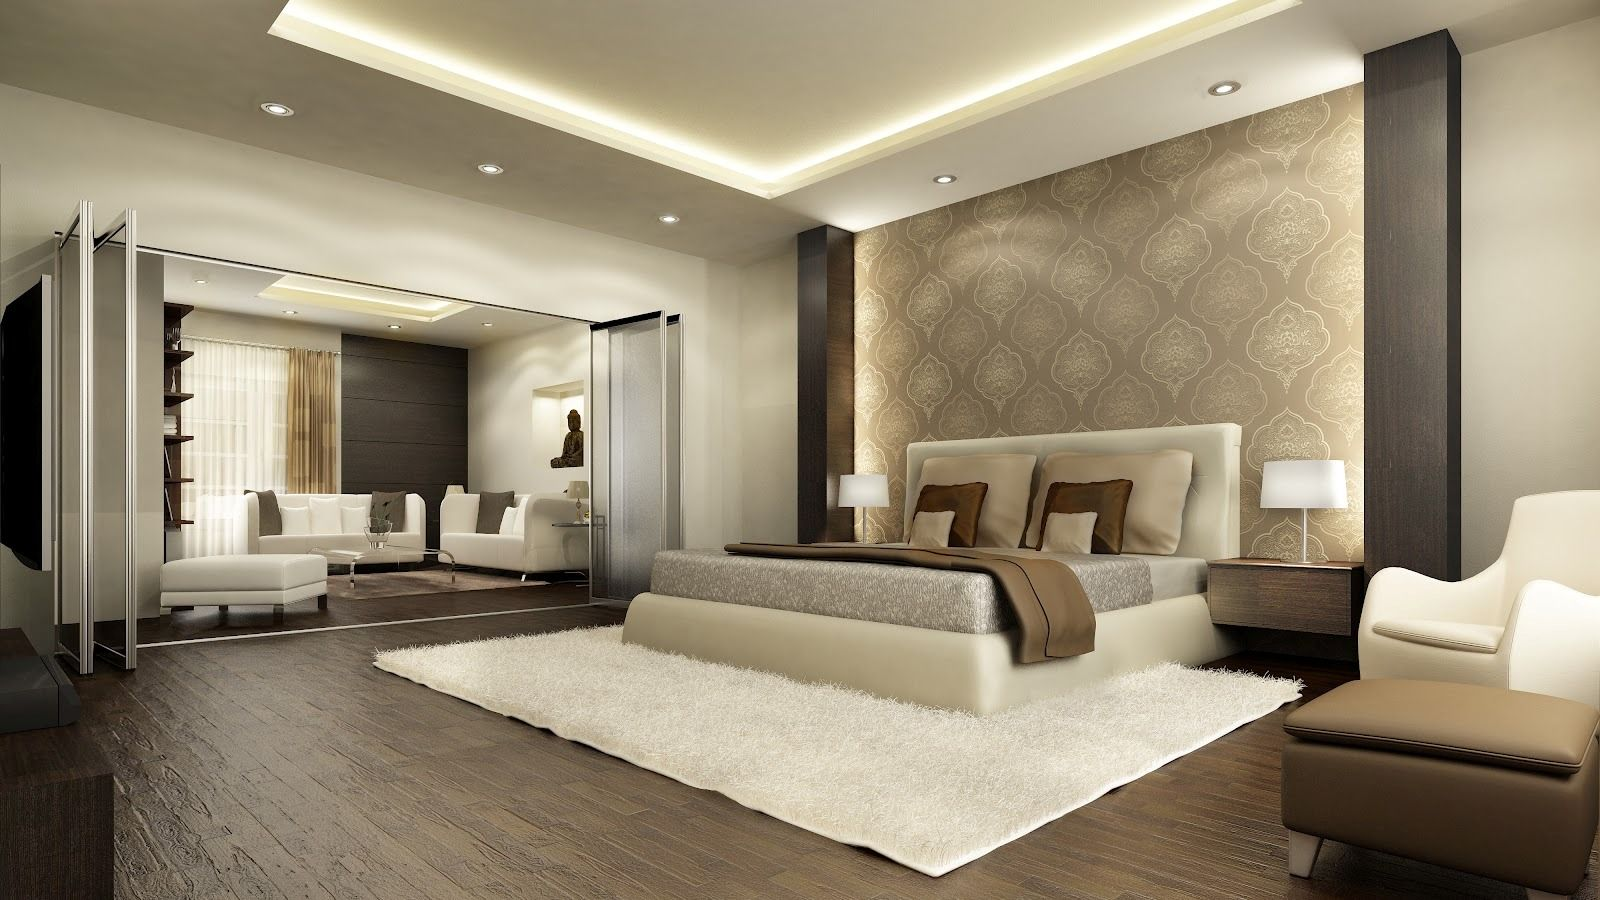 Fascinating Luxury Strangely Bedroom Interior Design Fur Rug Luxury Modern Master Bedrooms